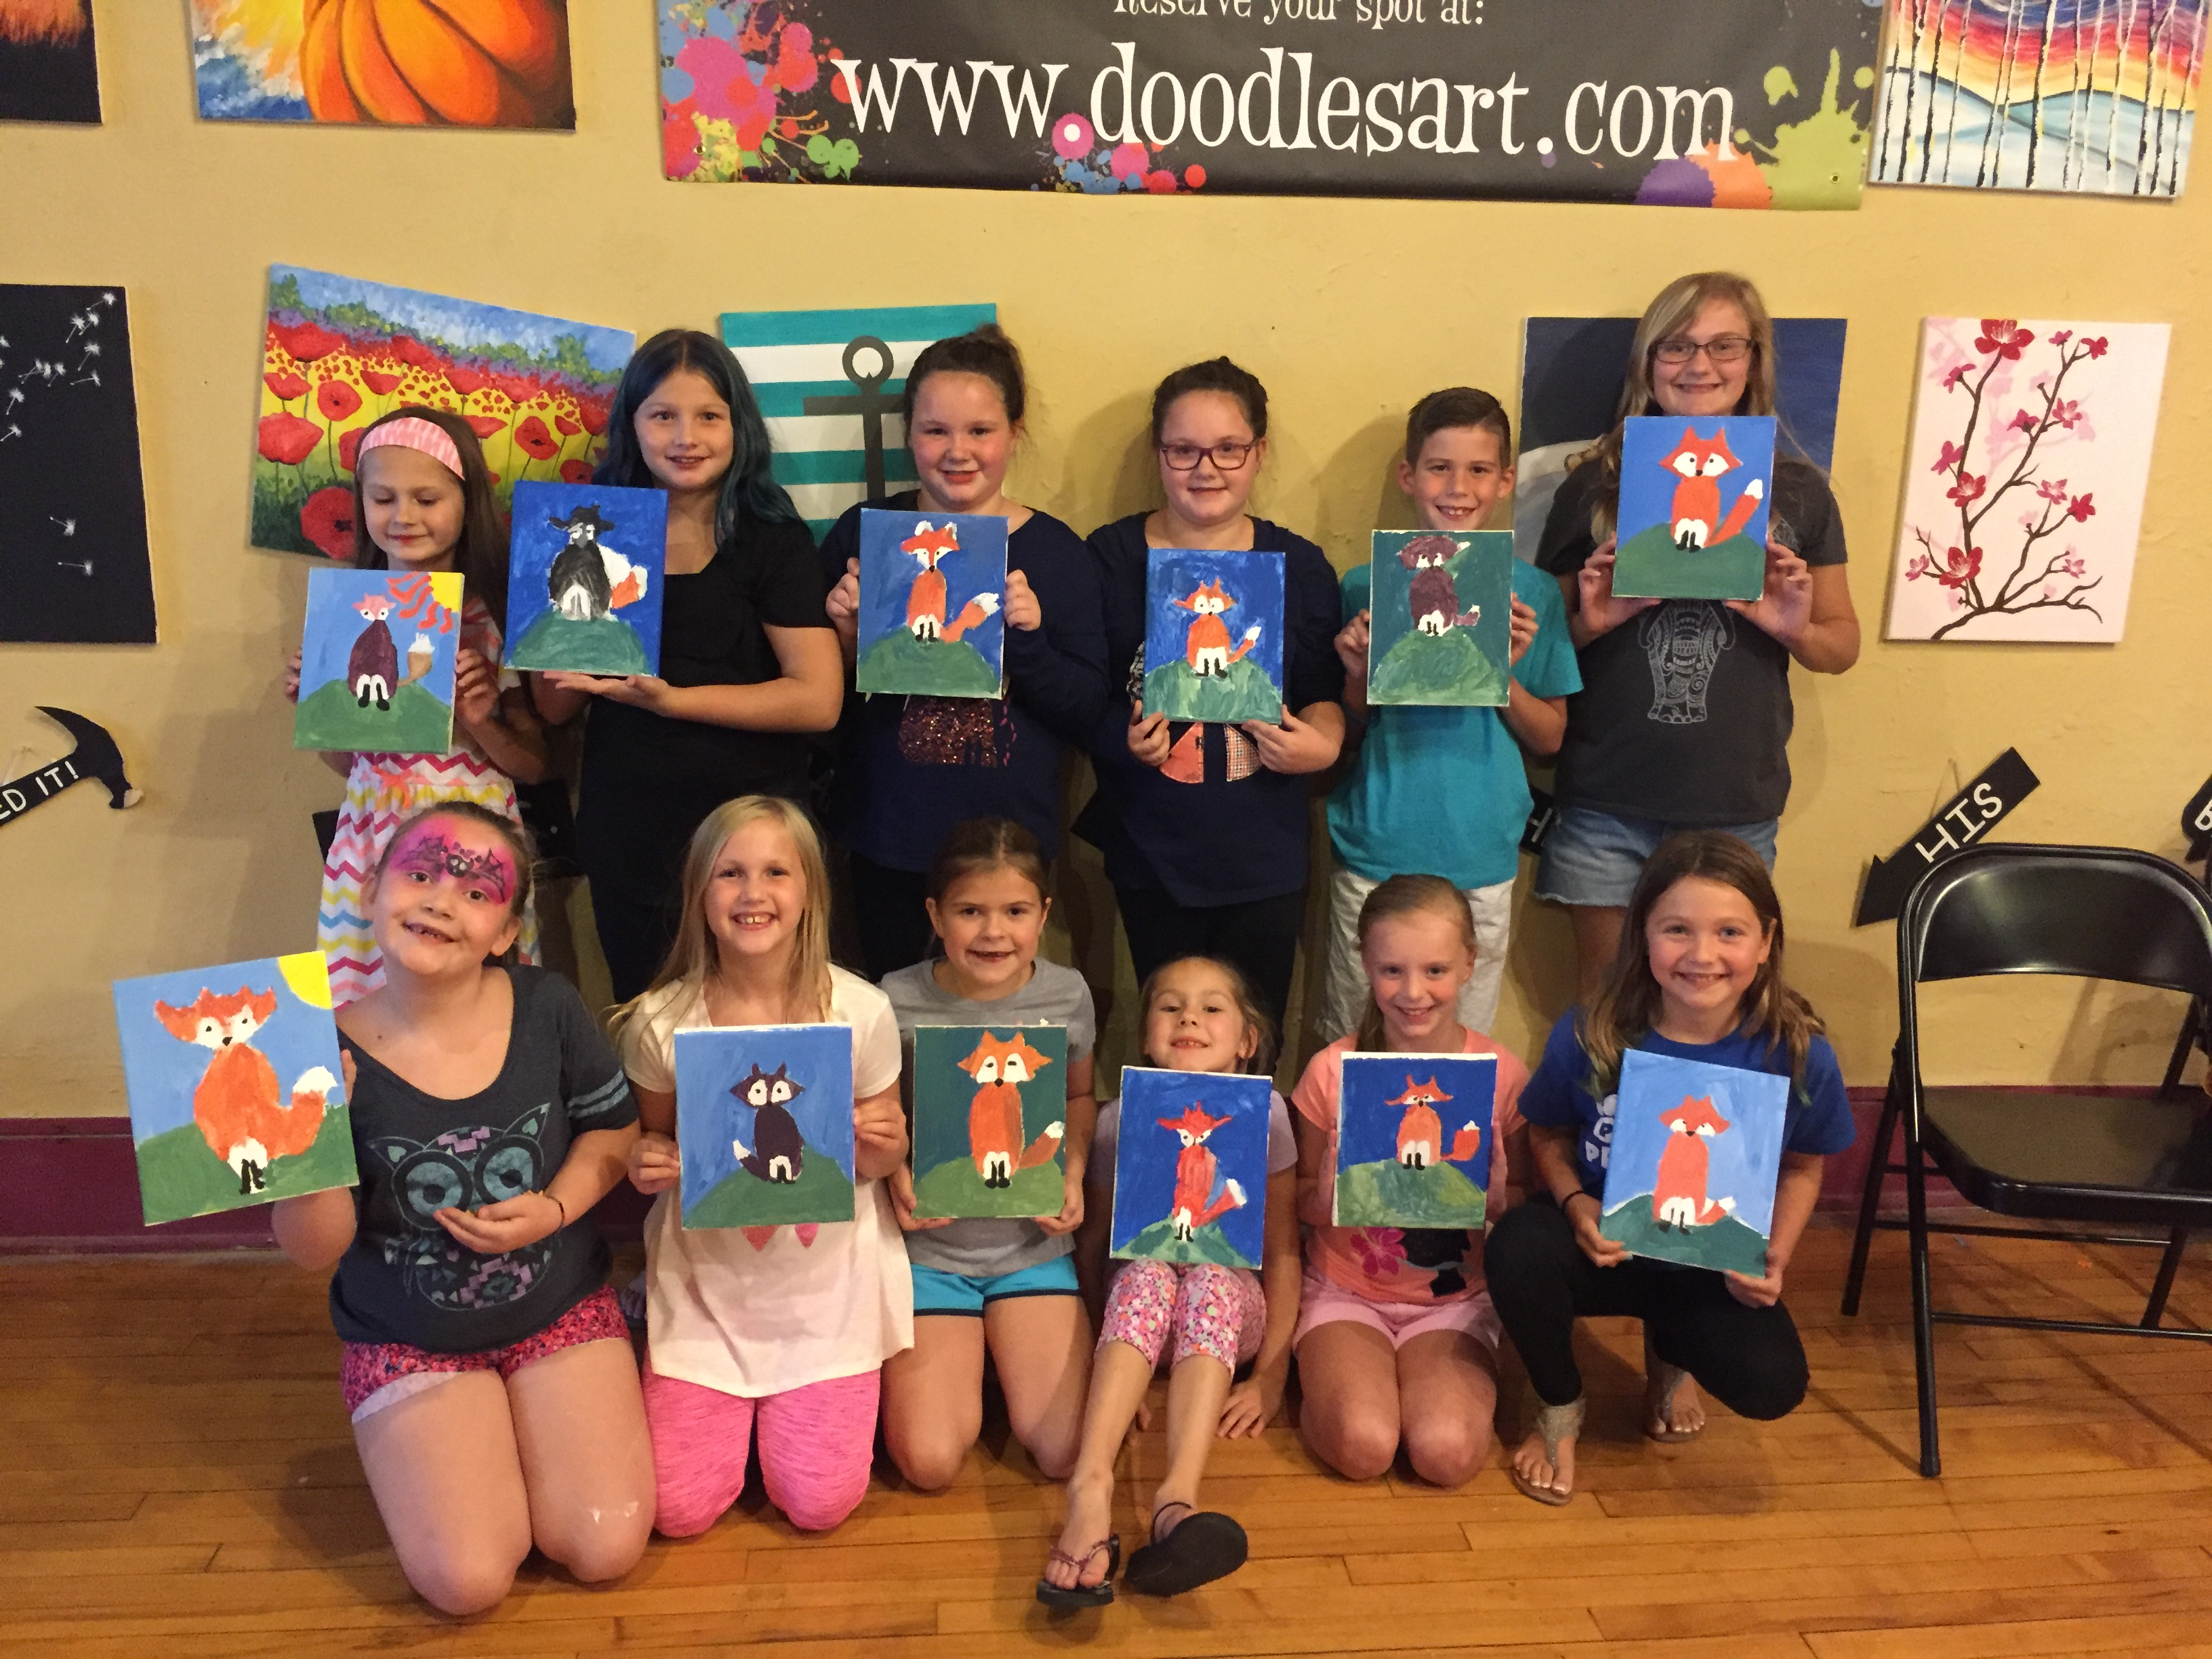 Caitlin & Cesley celebrated their birthday by painting a Fox! 9/10/16